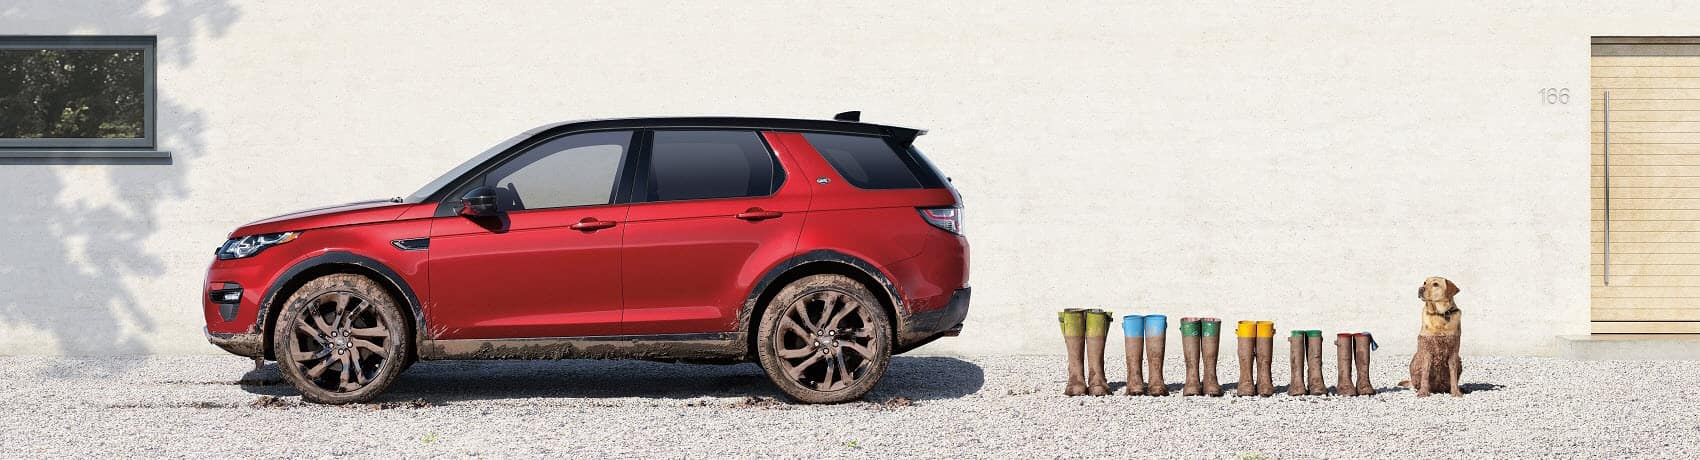 Land Rover Discovery Sport Research